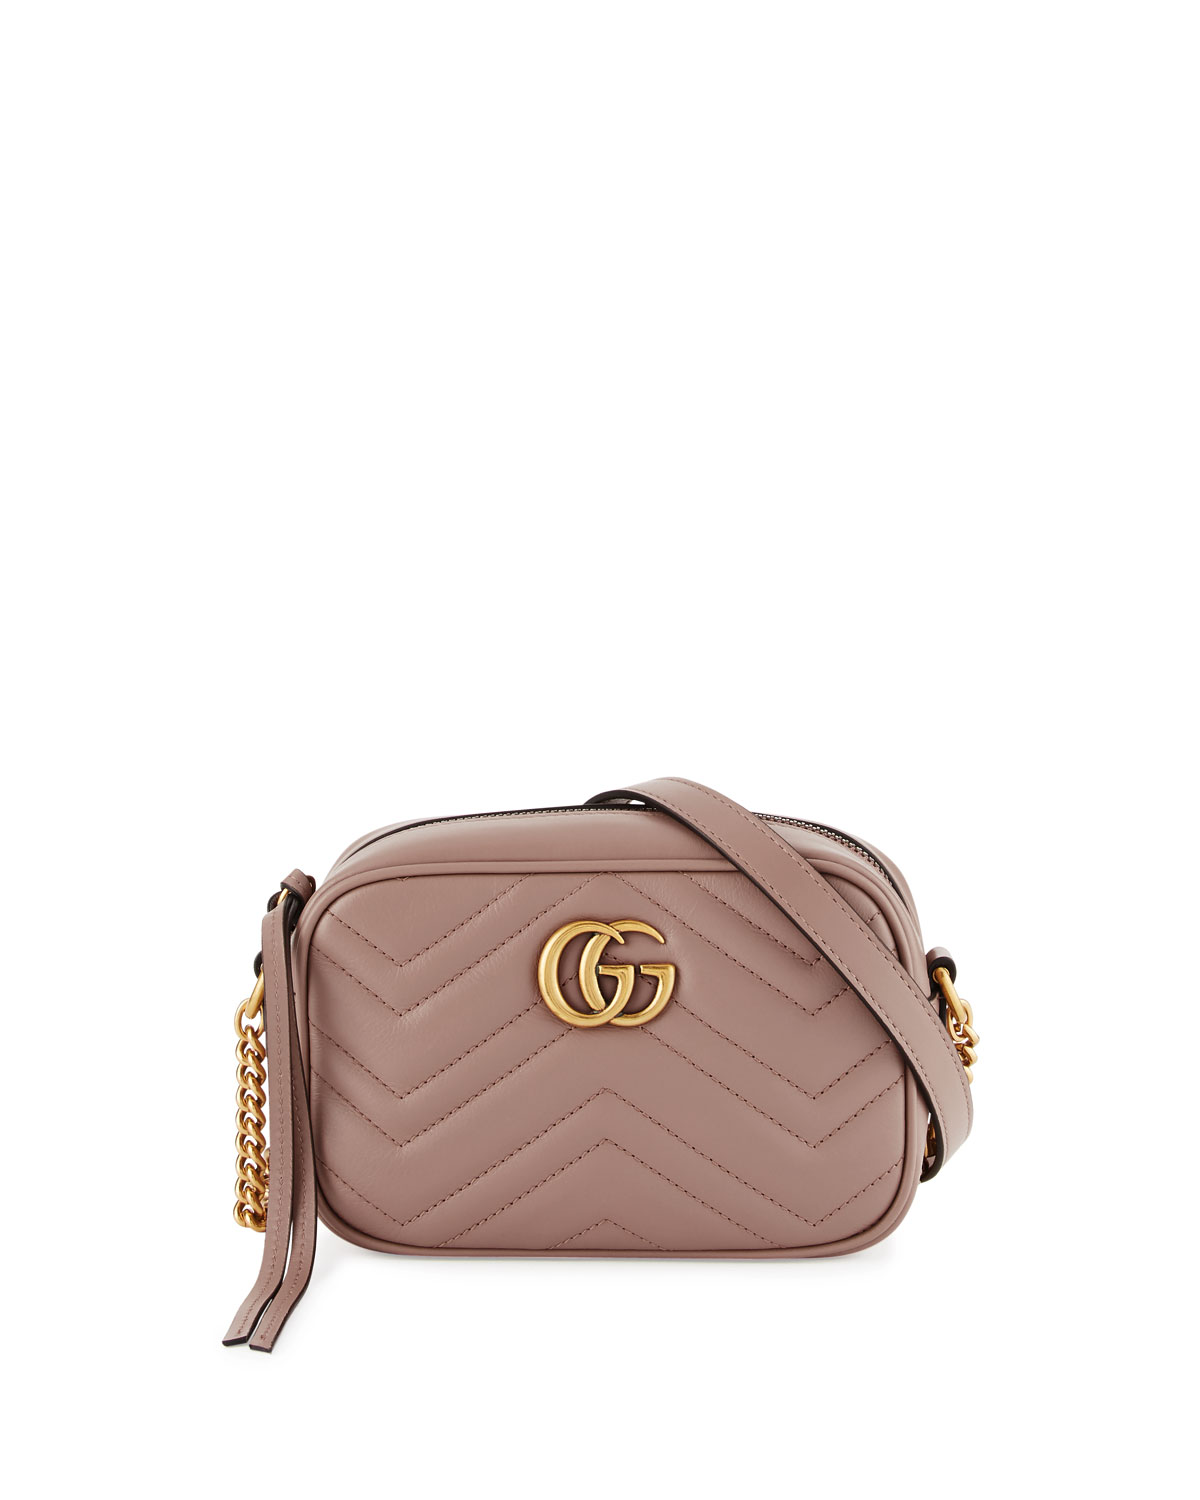 3a9835eb9a943 Gucci GG Marmont Mini Matelasse Camera Bag